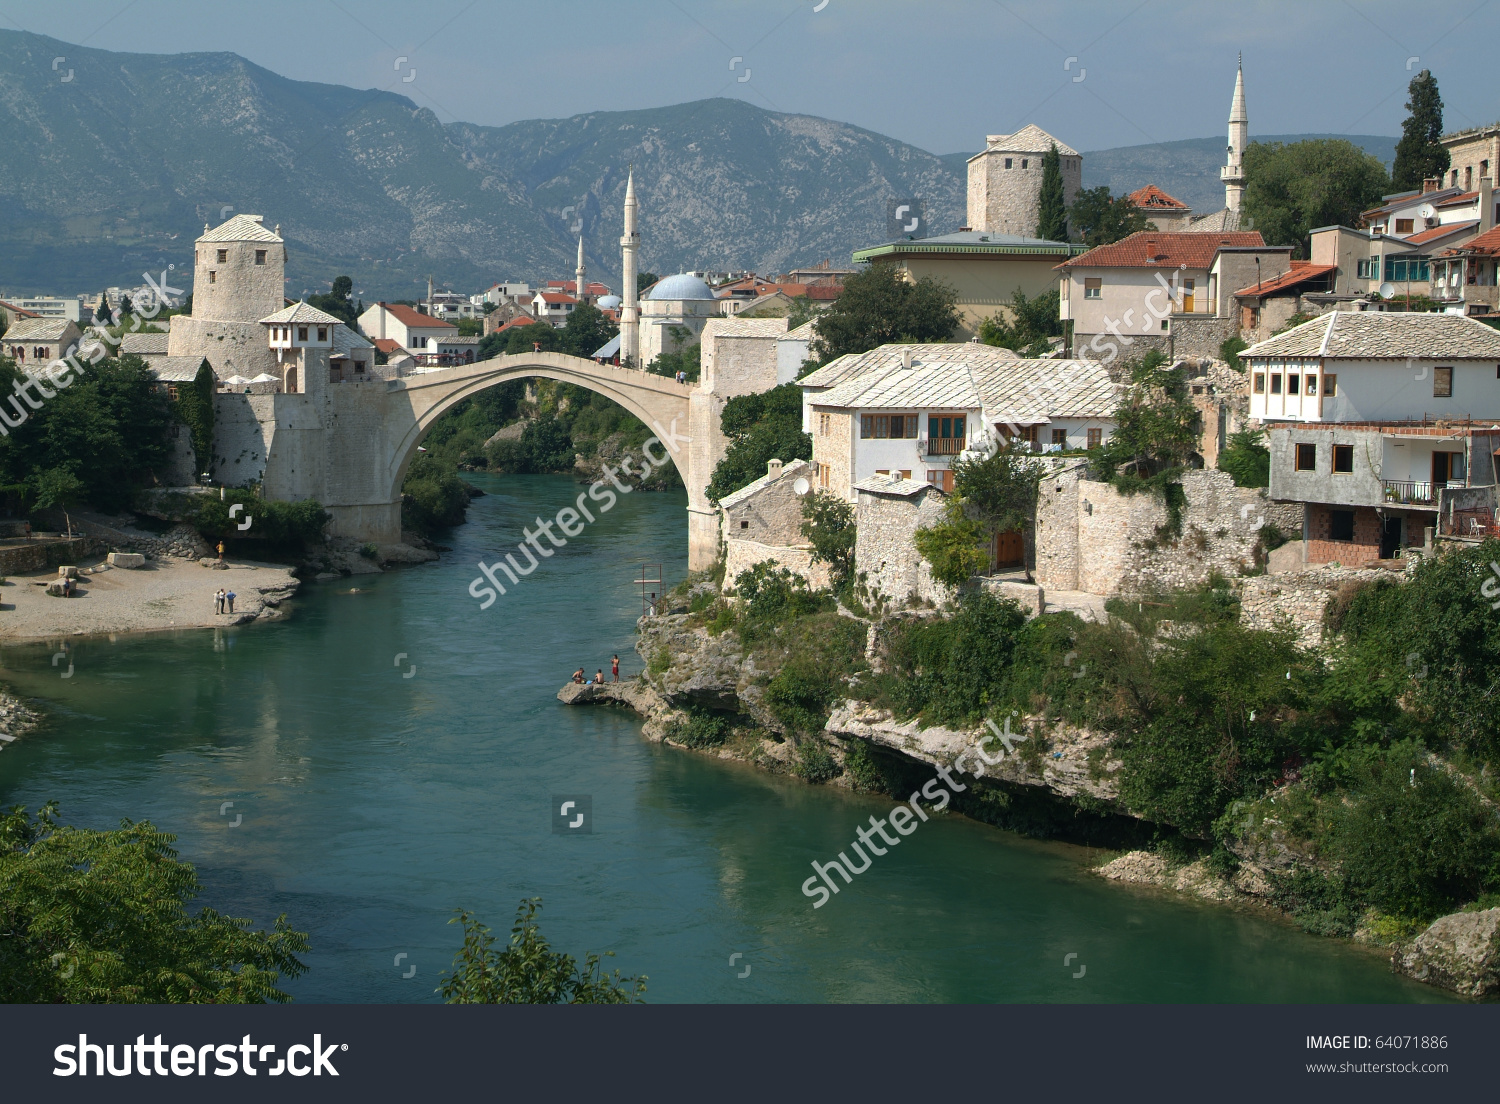 Bridge Over Neretva River On Mostar Stock Photo 64071886.